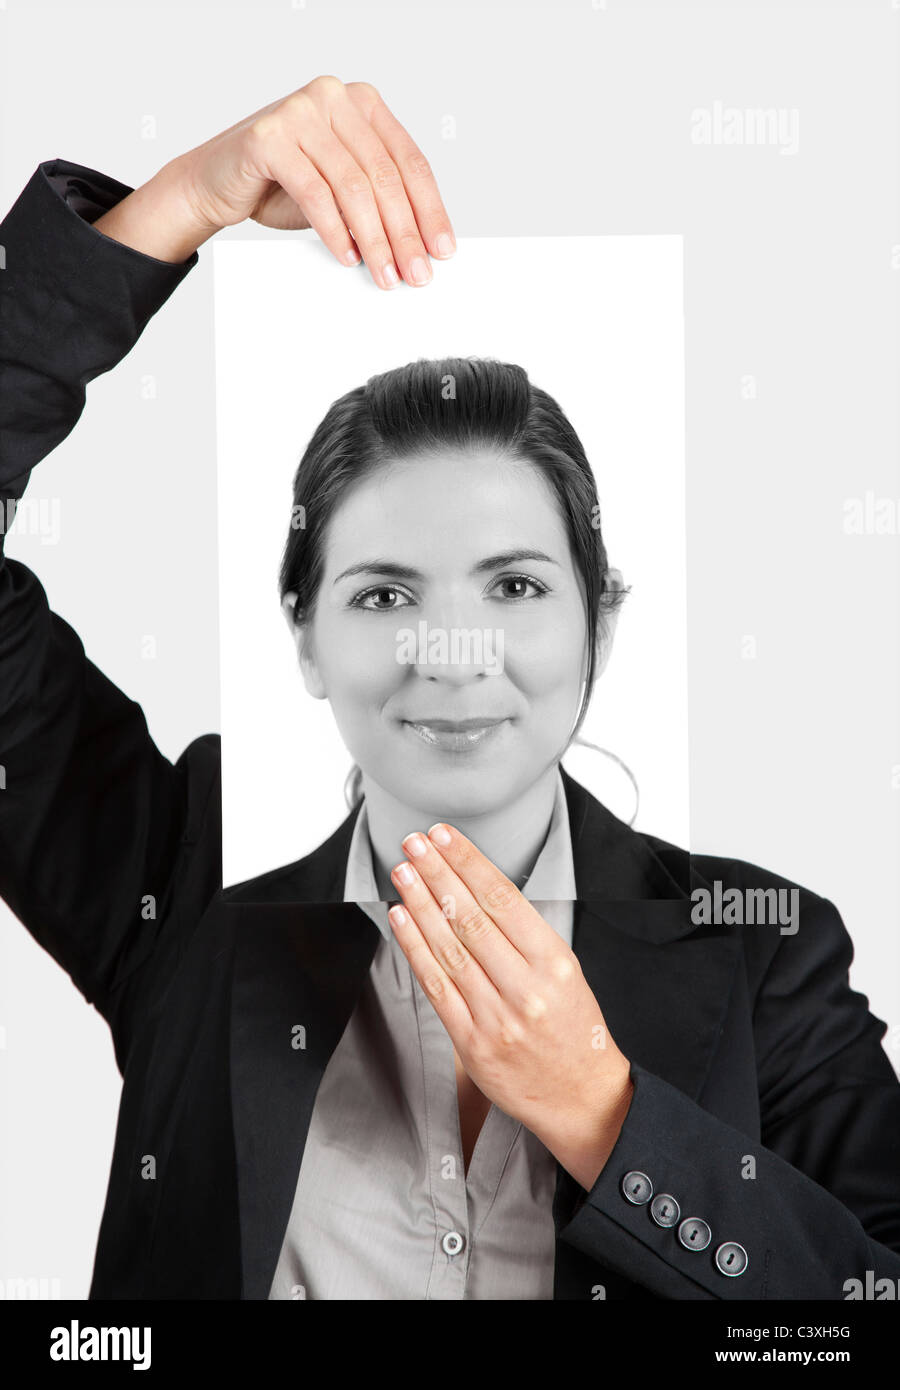 Woman holding a self portrait in front of her face - Stock Image